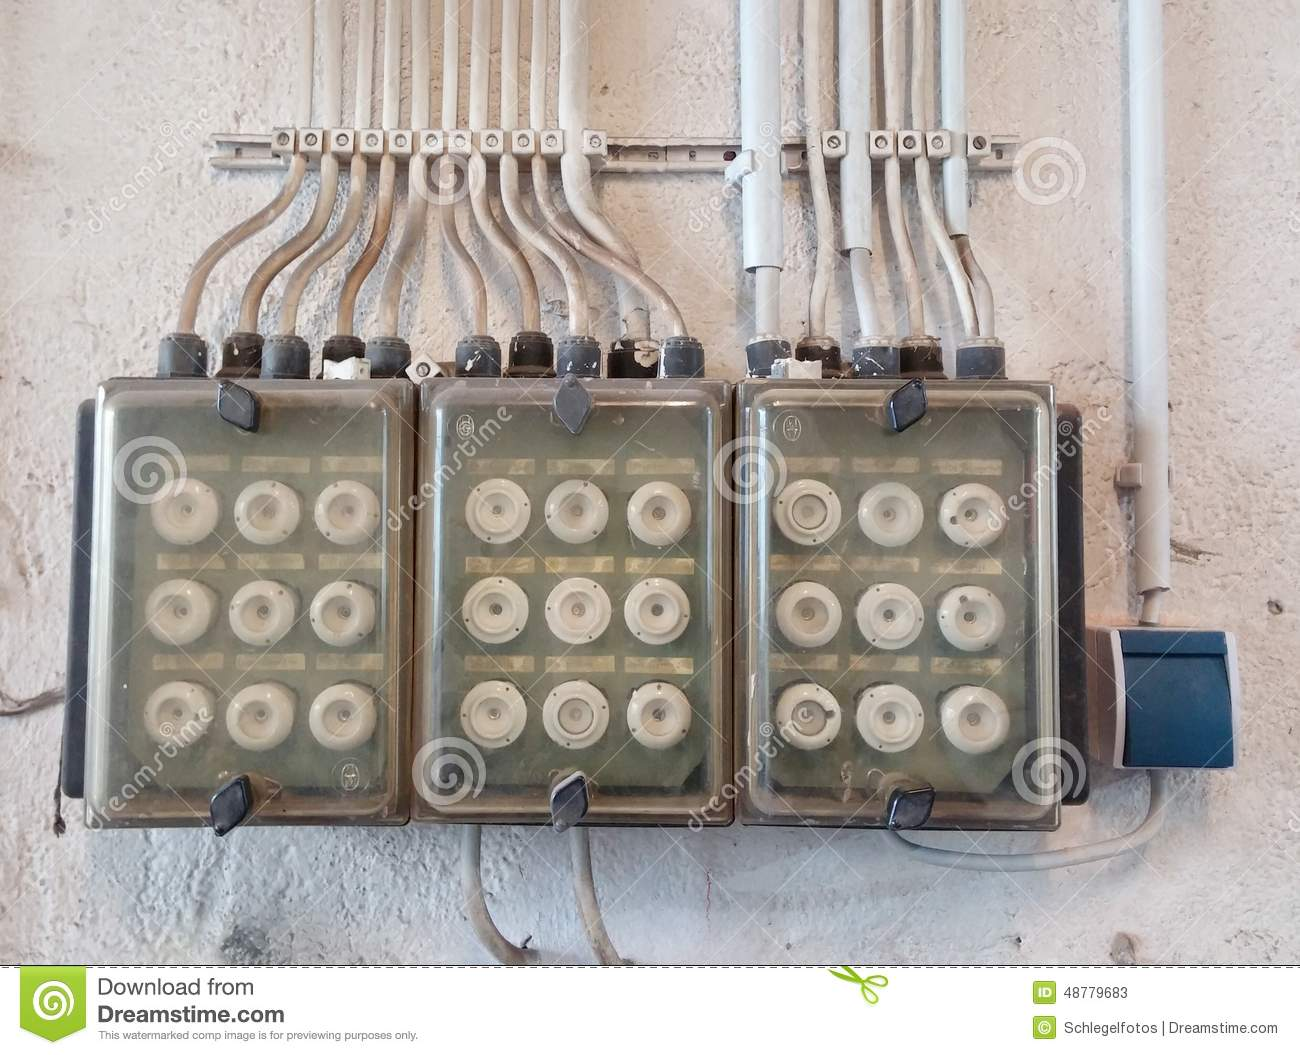 hight resolution of old electric fuse box